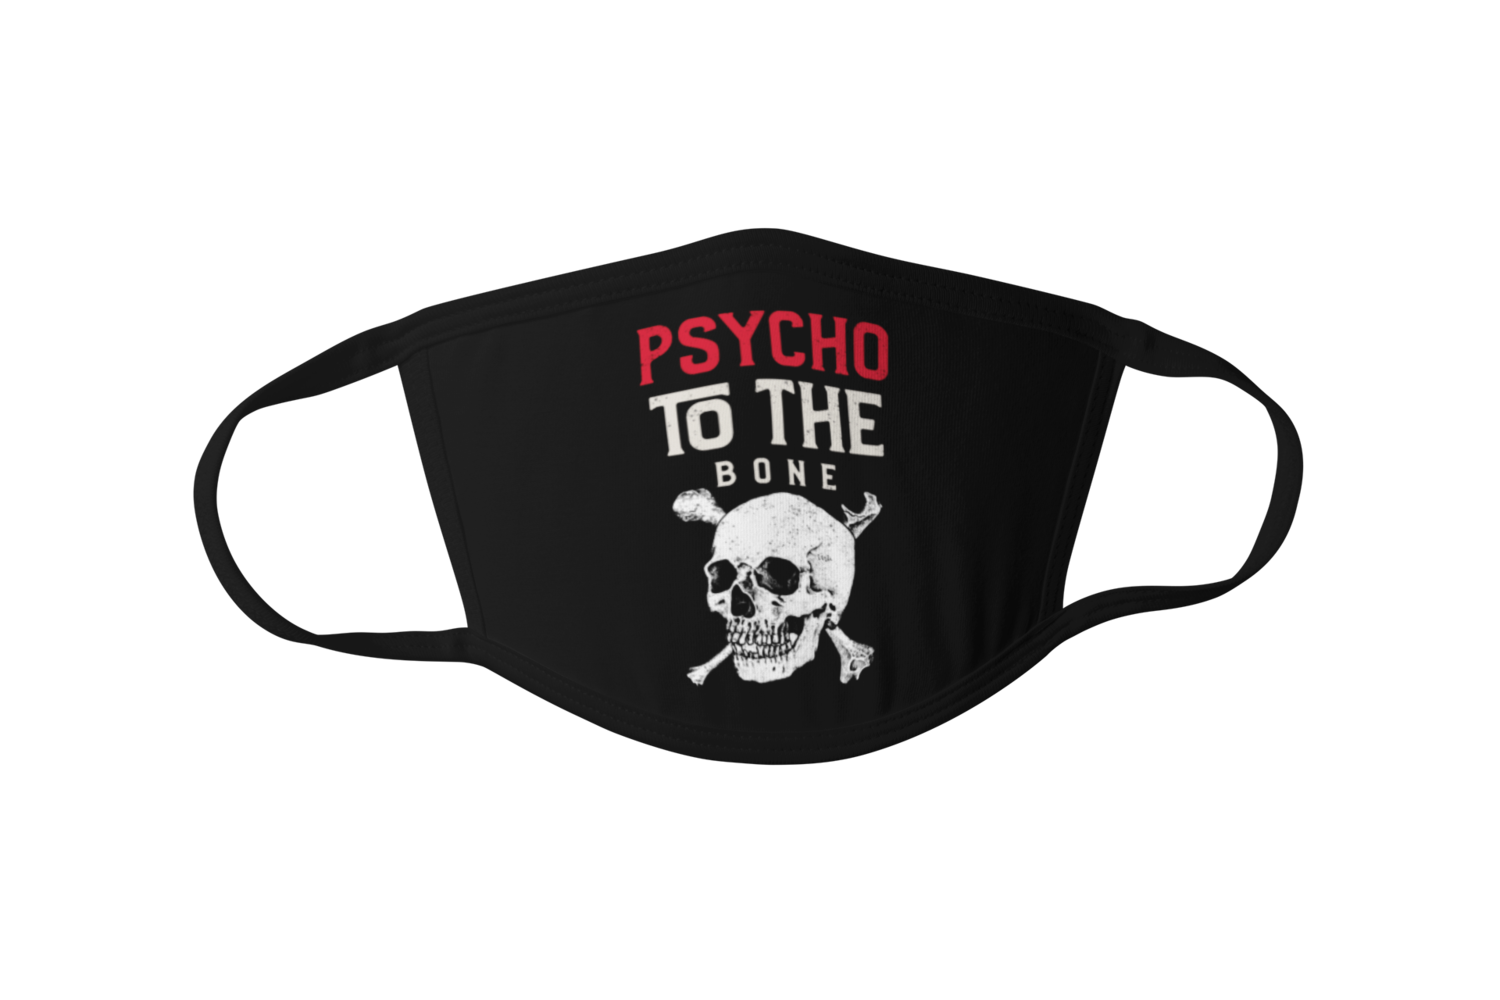 Psycho to the bone Mask